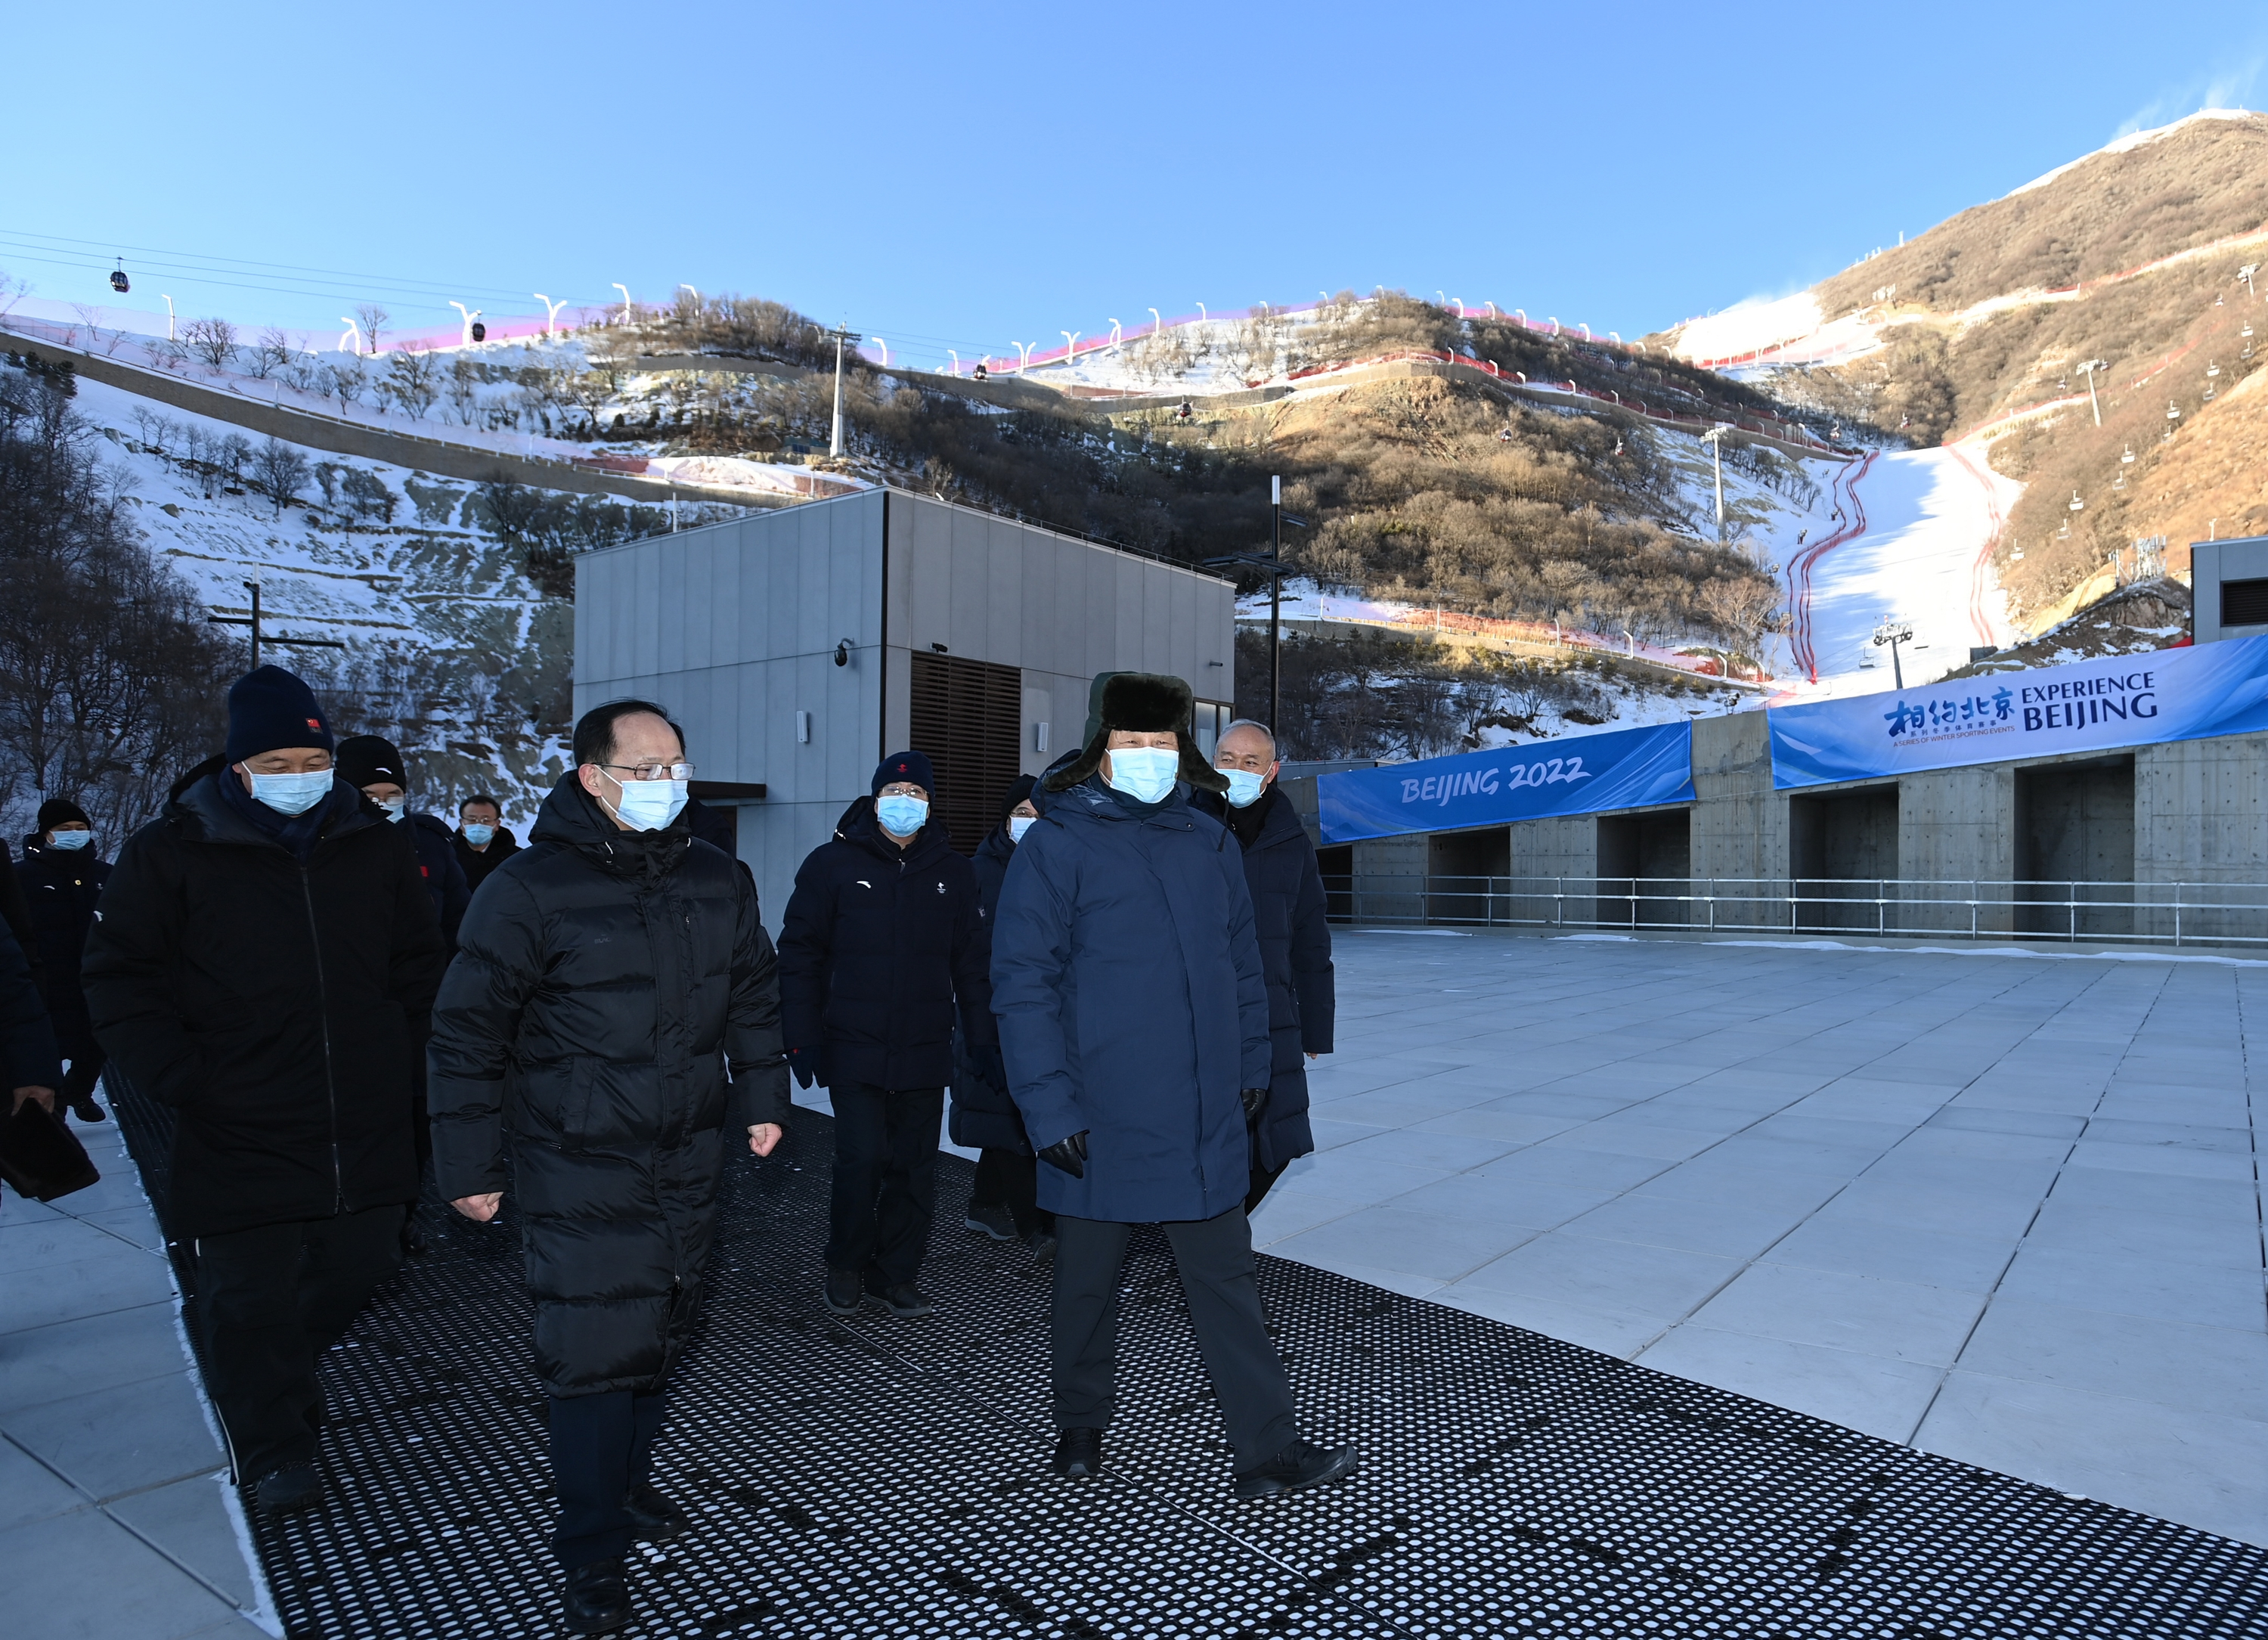 Xi underscores developing China's winter sports by hosting Beijing 2022